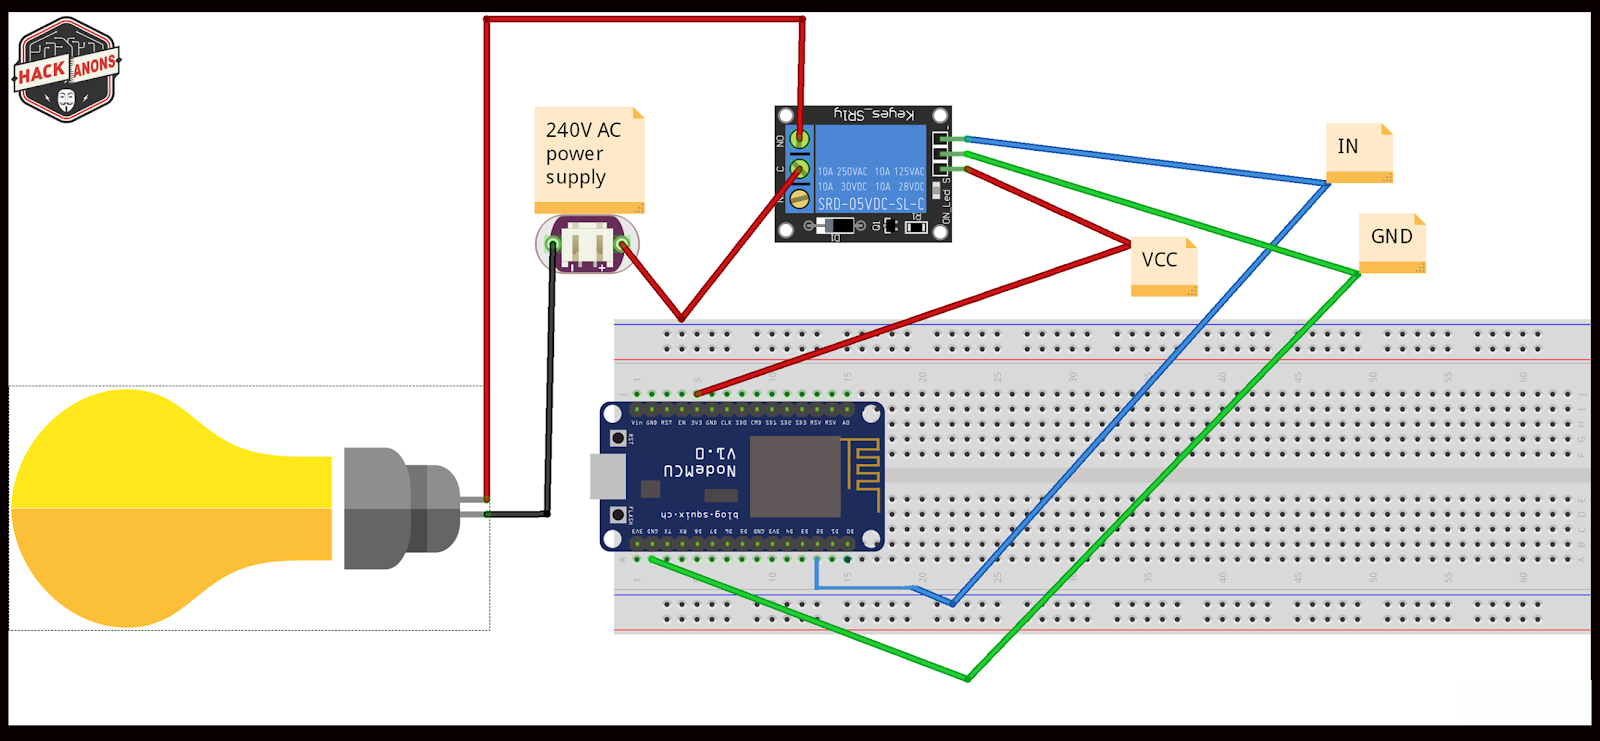 Iot With Firebase Home Automation Light Control Using Google Diagram Arduino Wiring Esp8266 Connecting